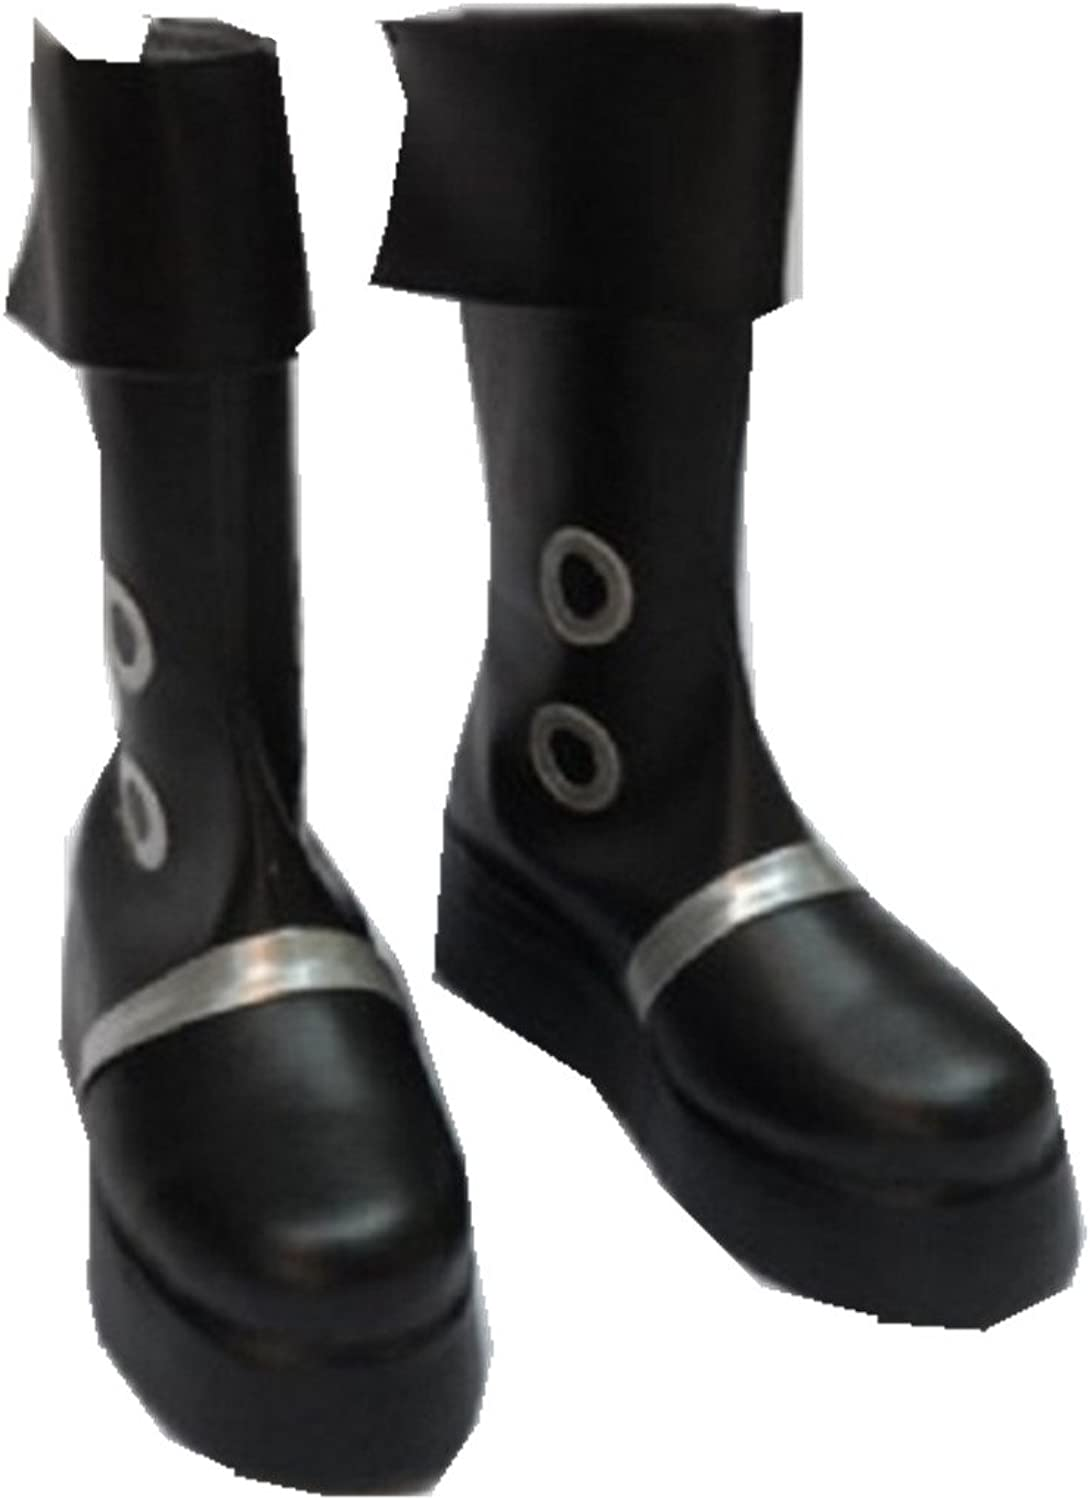 One Piece Portgas D Ace Cosplay Costume Boots Boot shoes shoes